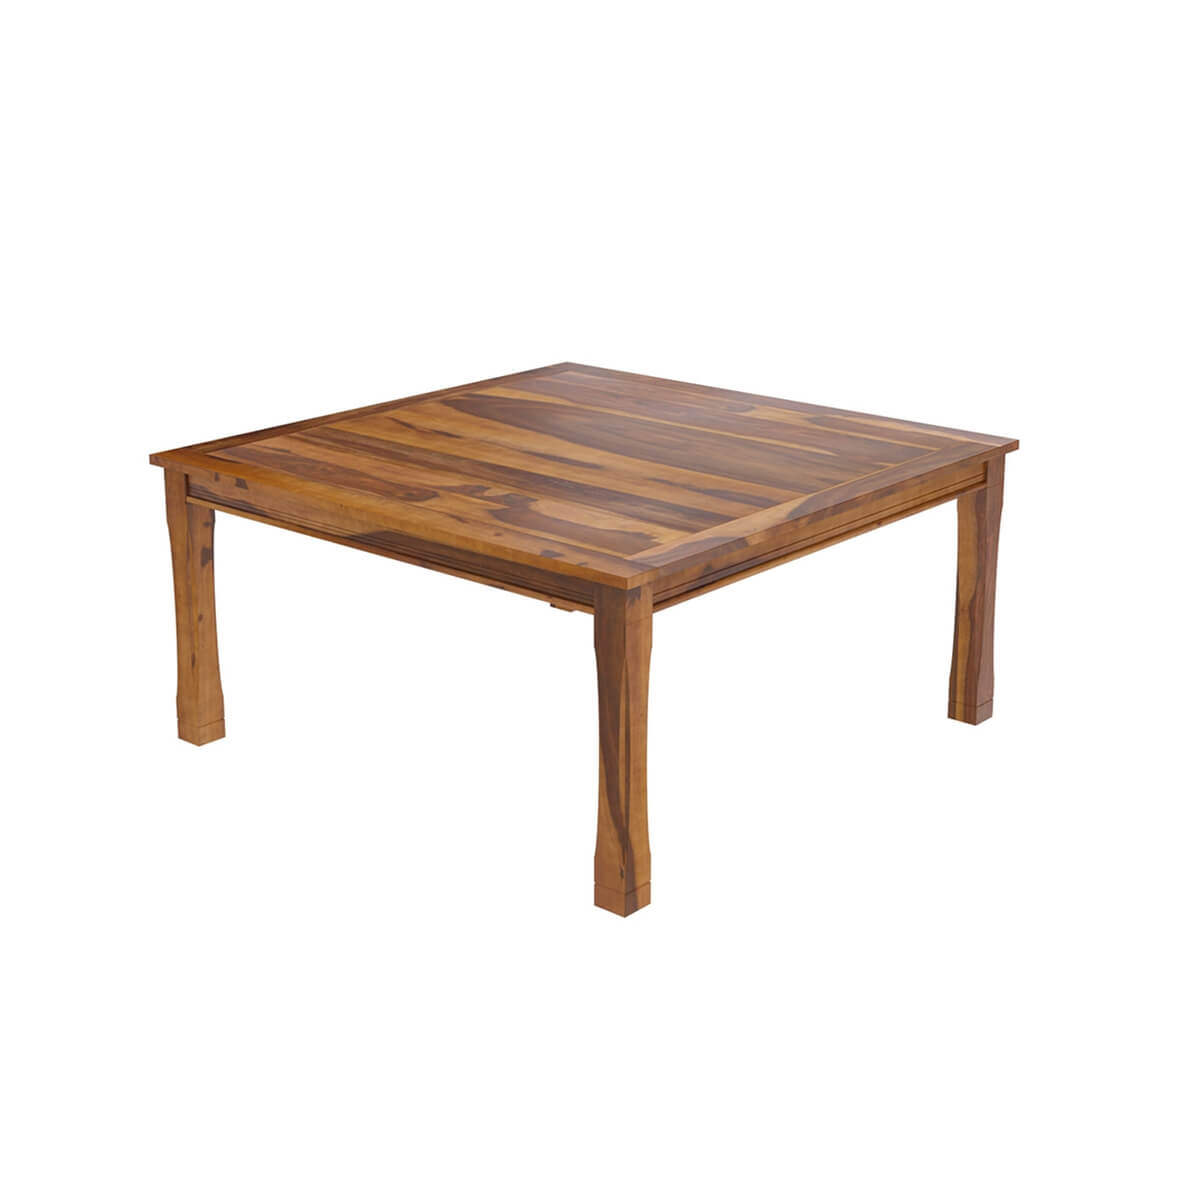 square dining room table for 4 | Dallas Ranch Transitional Square Wood Dining Room Table ...